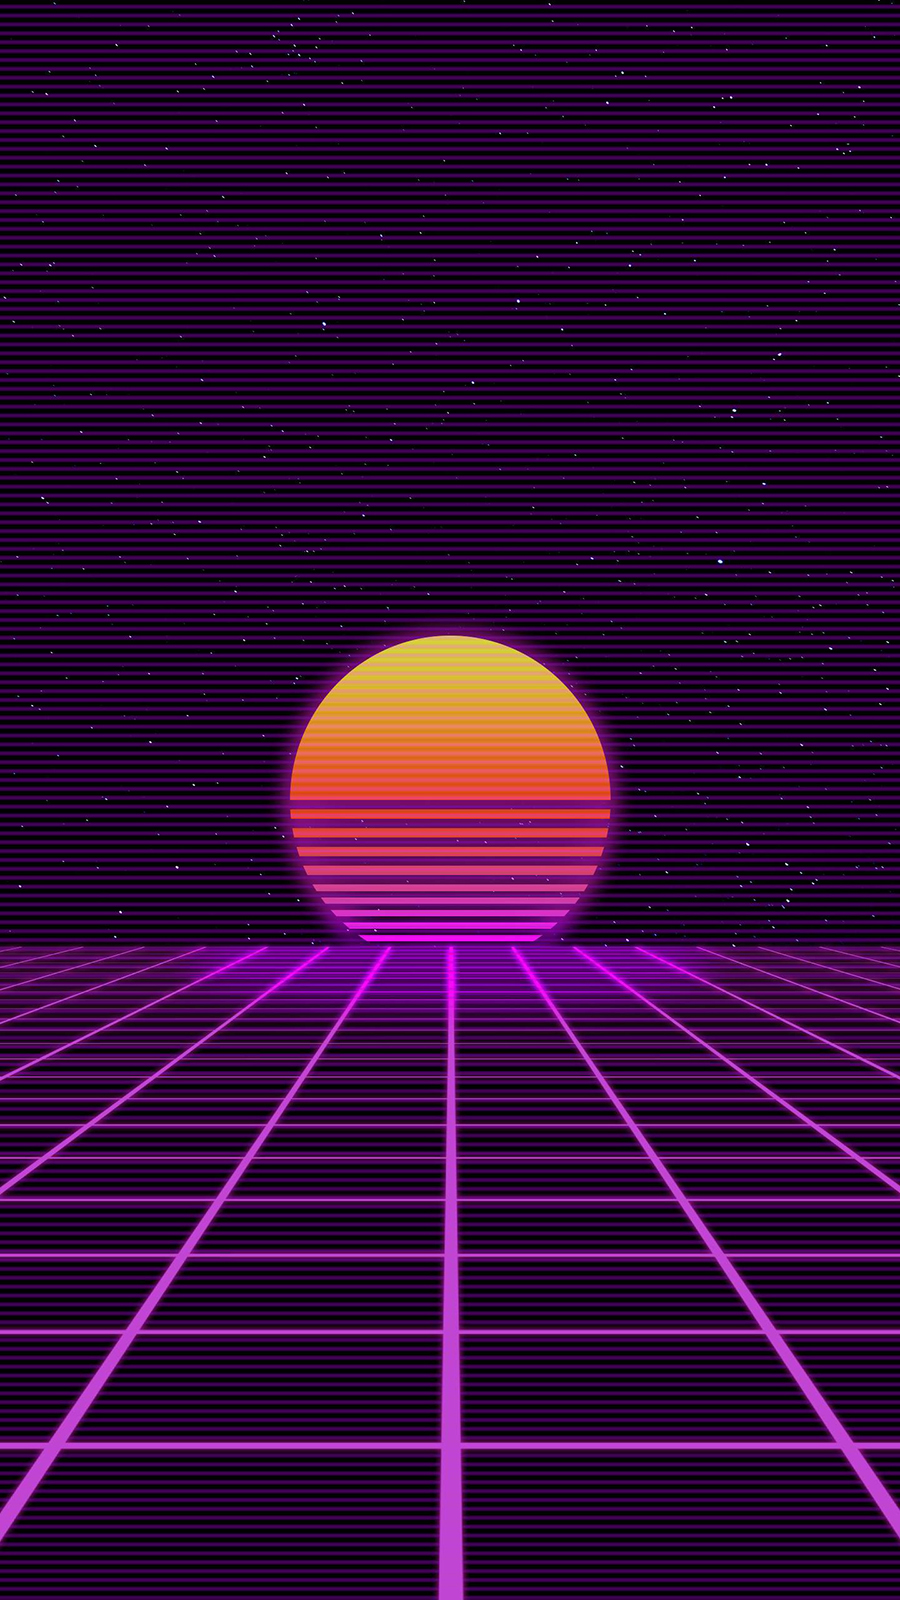 Retro Sunset Art Wallpapers Free Download For Your Device